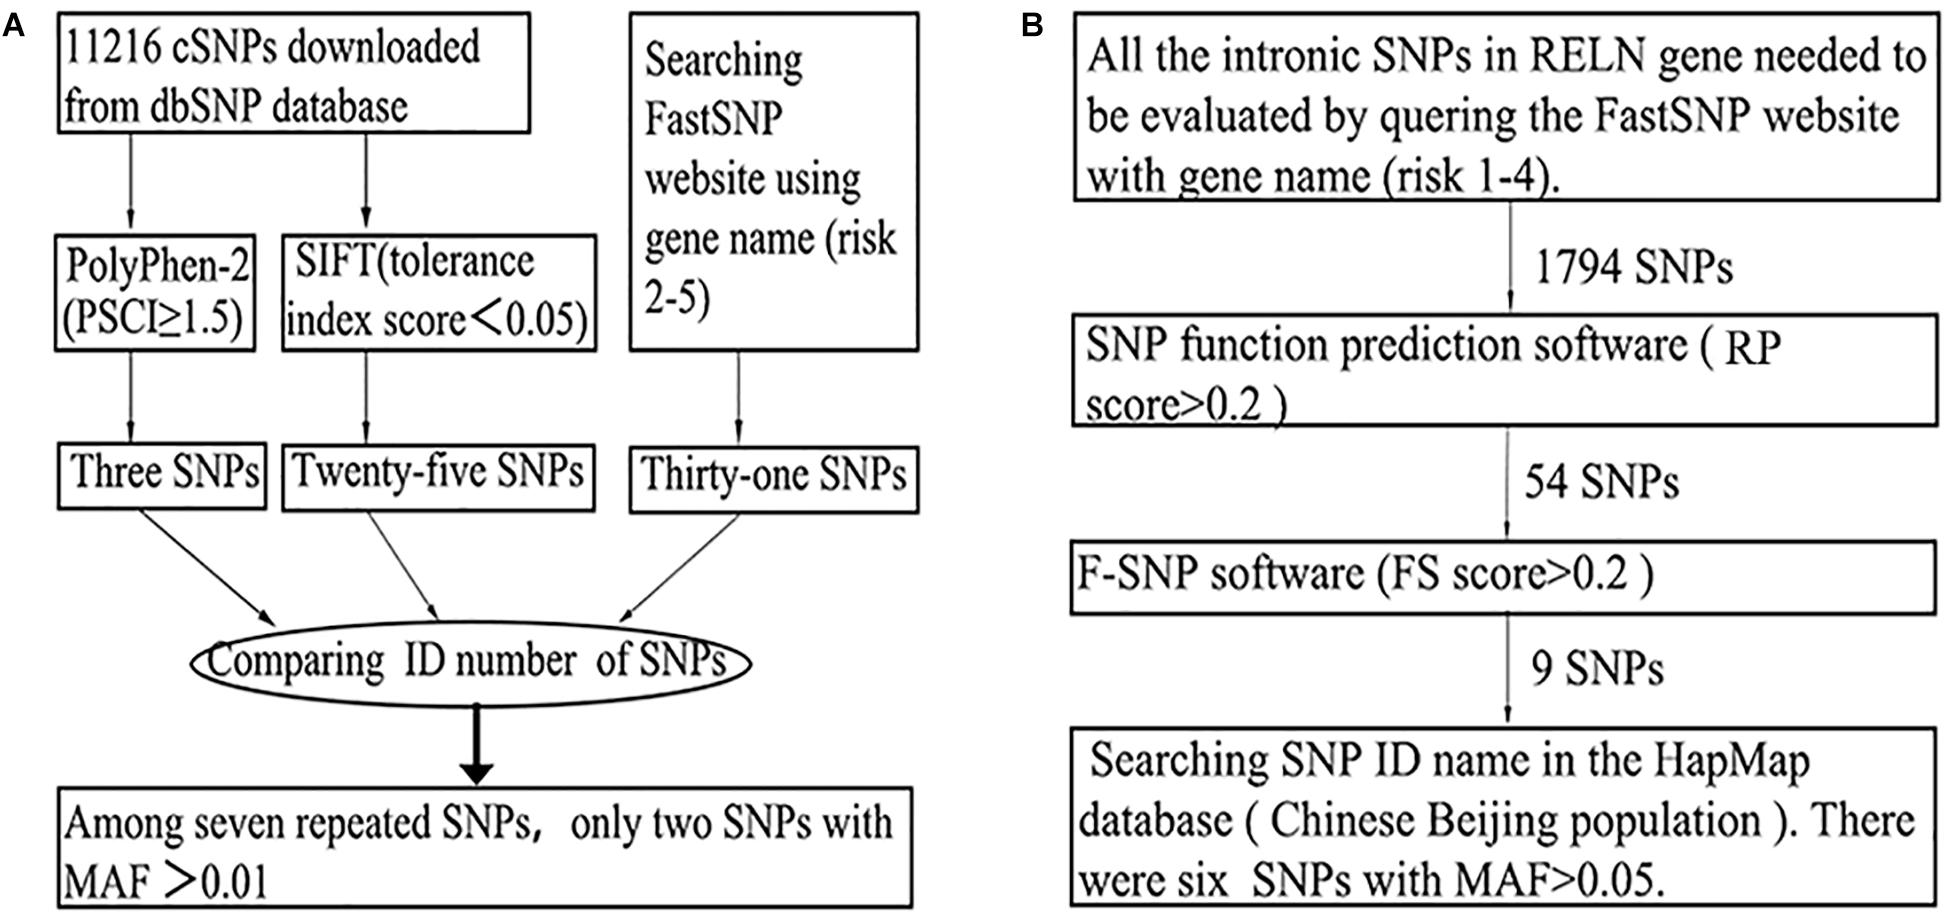 Frontiers | SNP Variation of RELN Gene and Schizophrenia in a